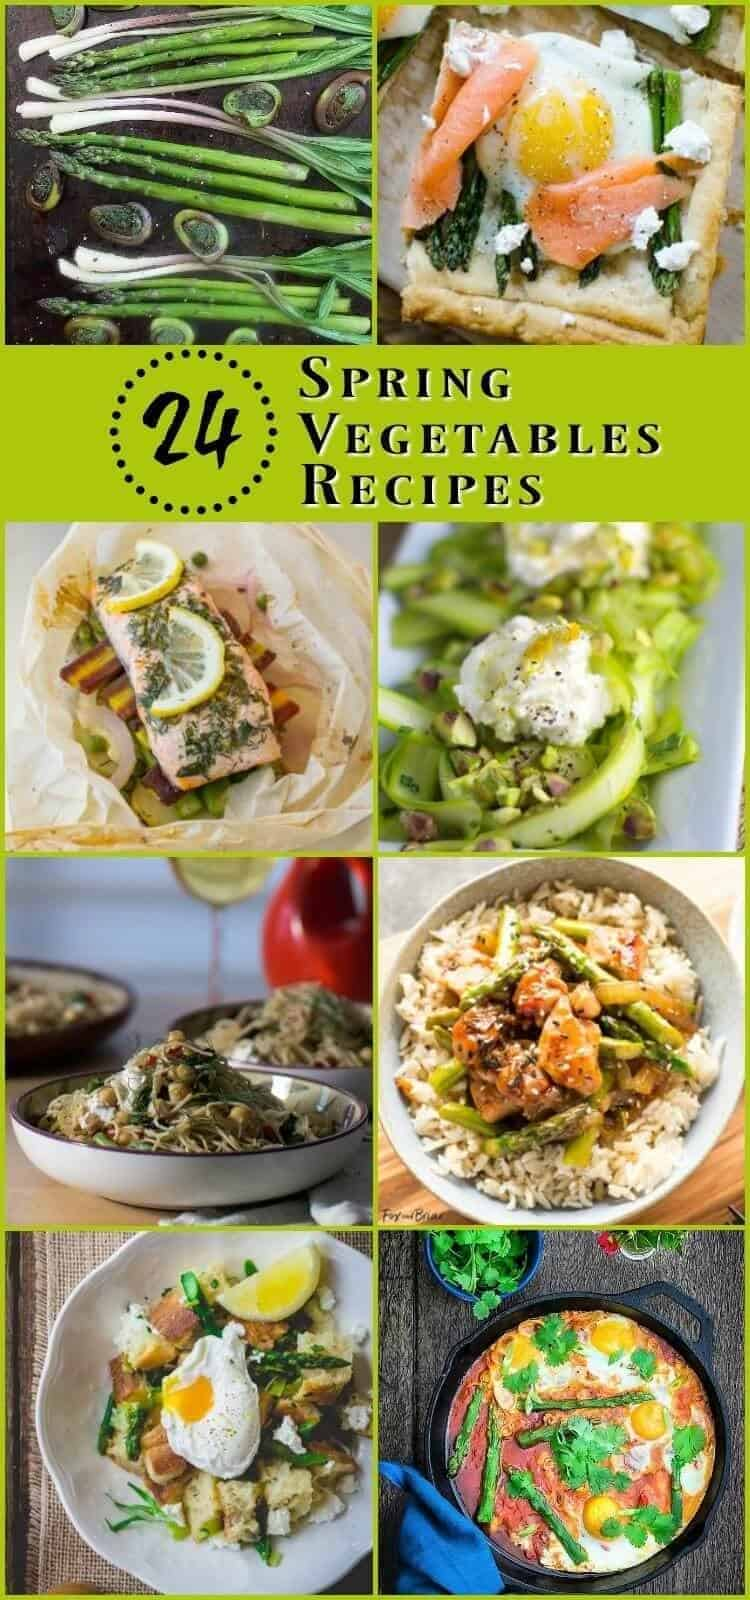 24 Spring Vegetables Recipes - Seasonal spring vegetables recipes - mains and sides - to liven up your spring meal planning! spring vegetables recipes | spring recipes | Healthy recipes